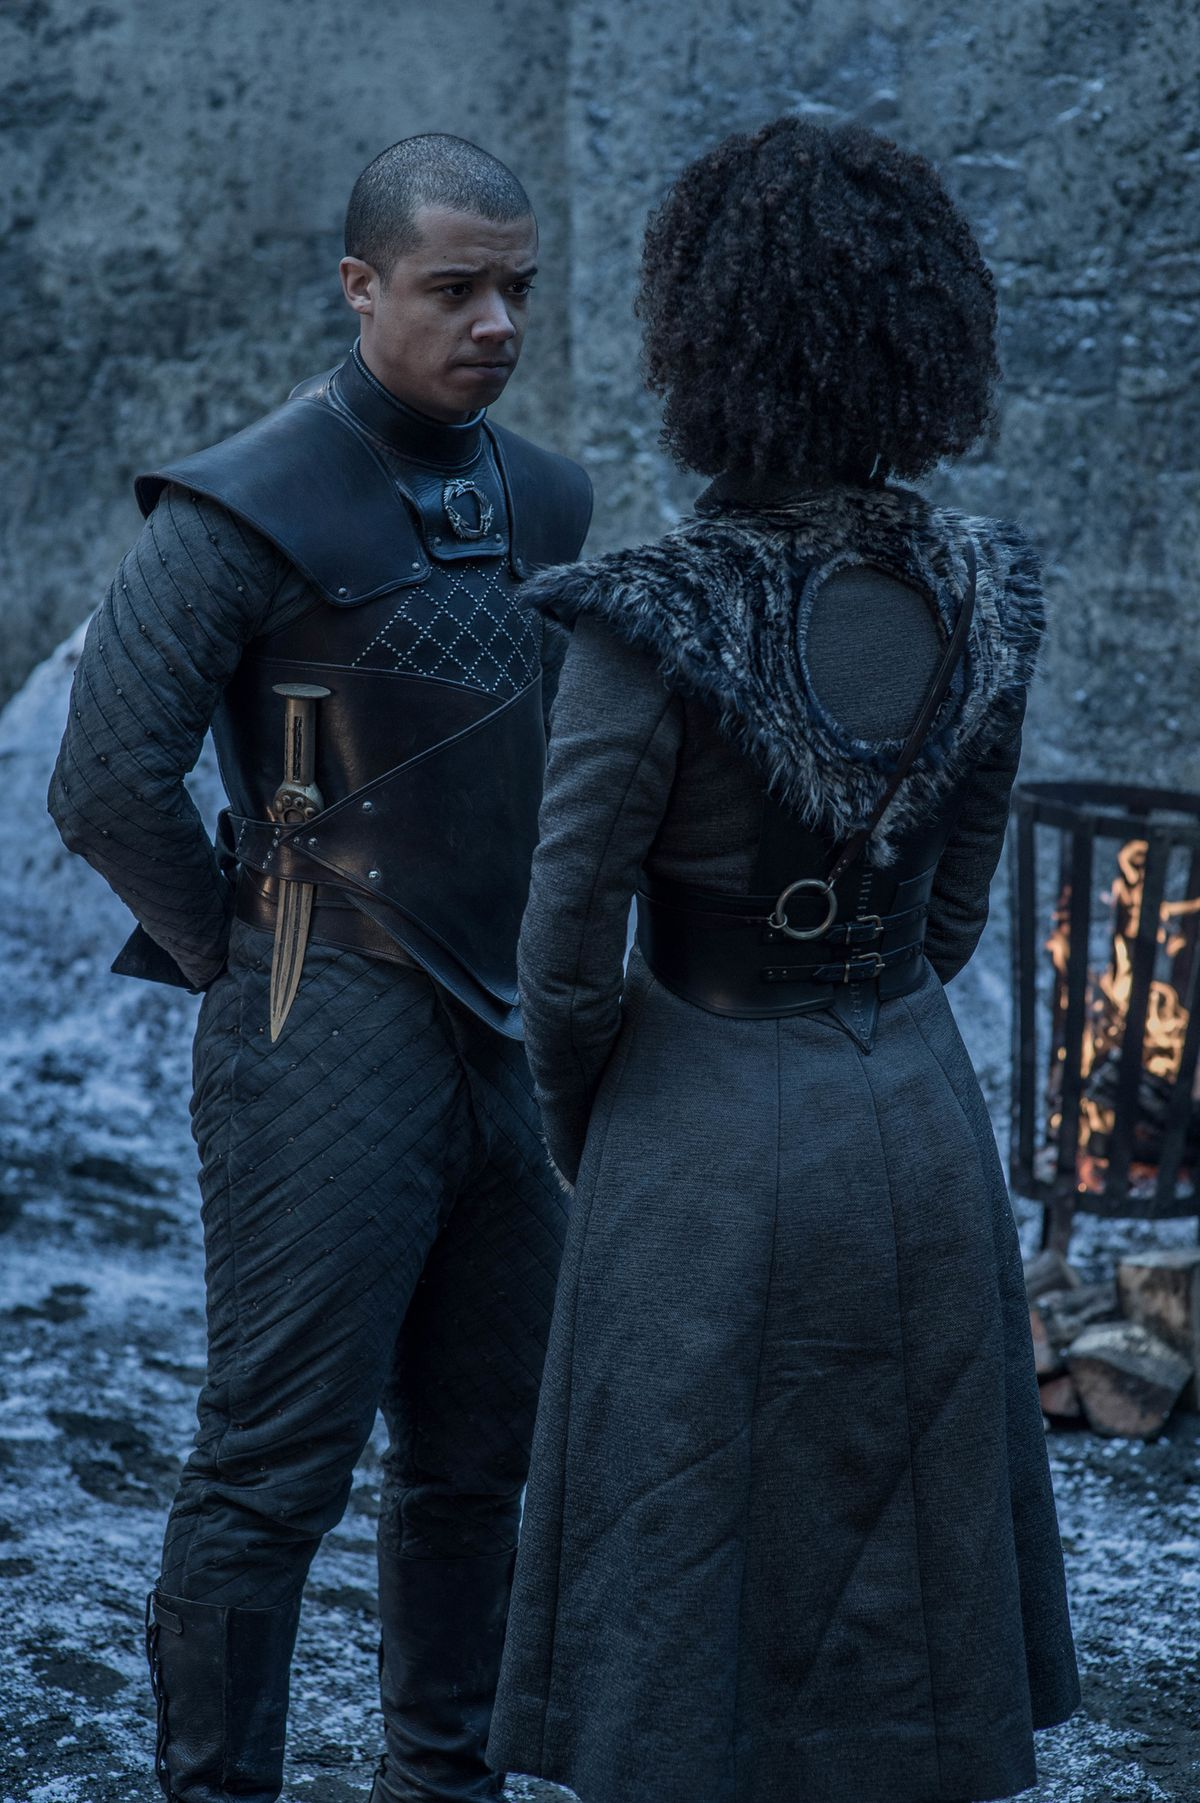 Game of Thrones season 8 episode 2 - Grey Worm and Missandei in the Winterfell courtyard